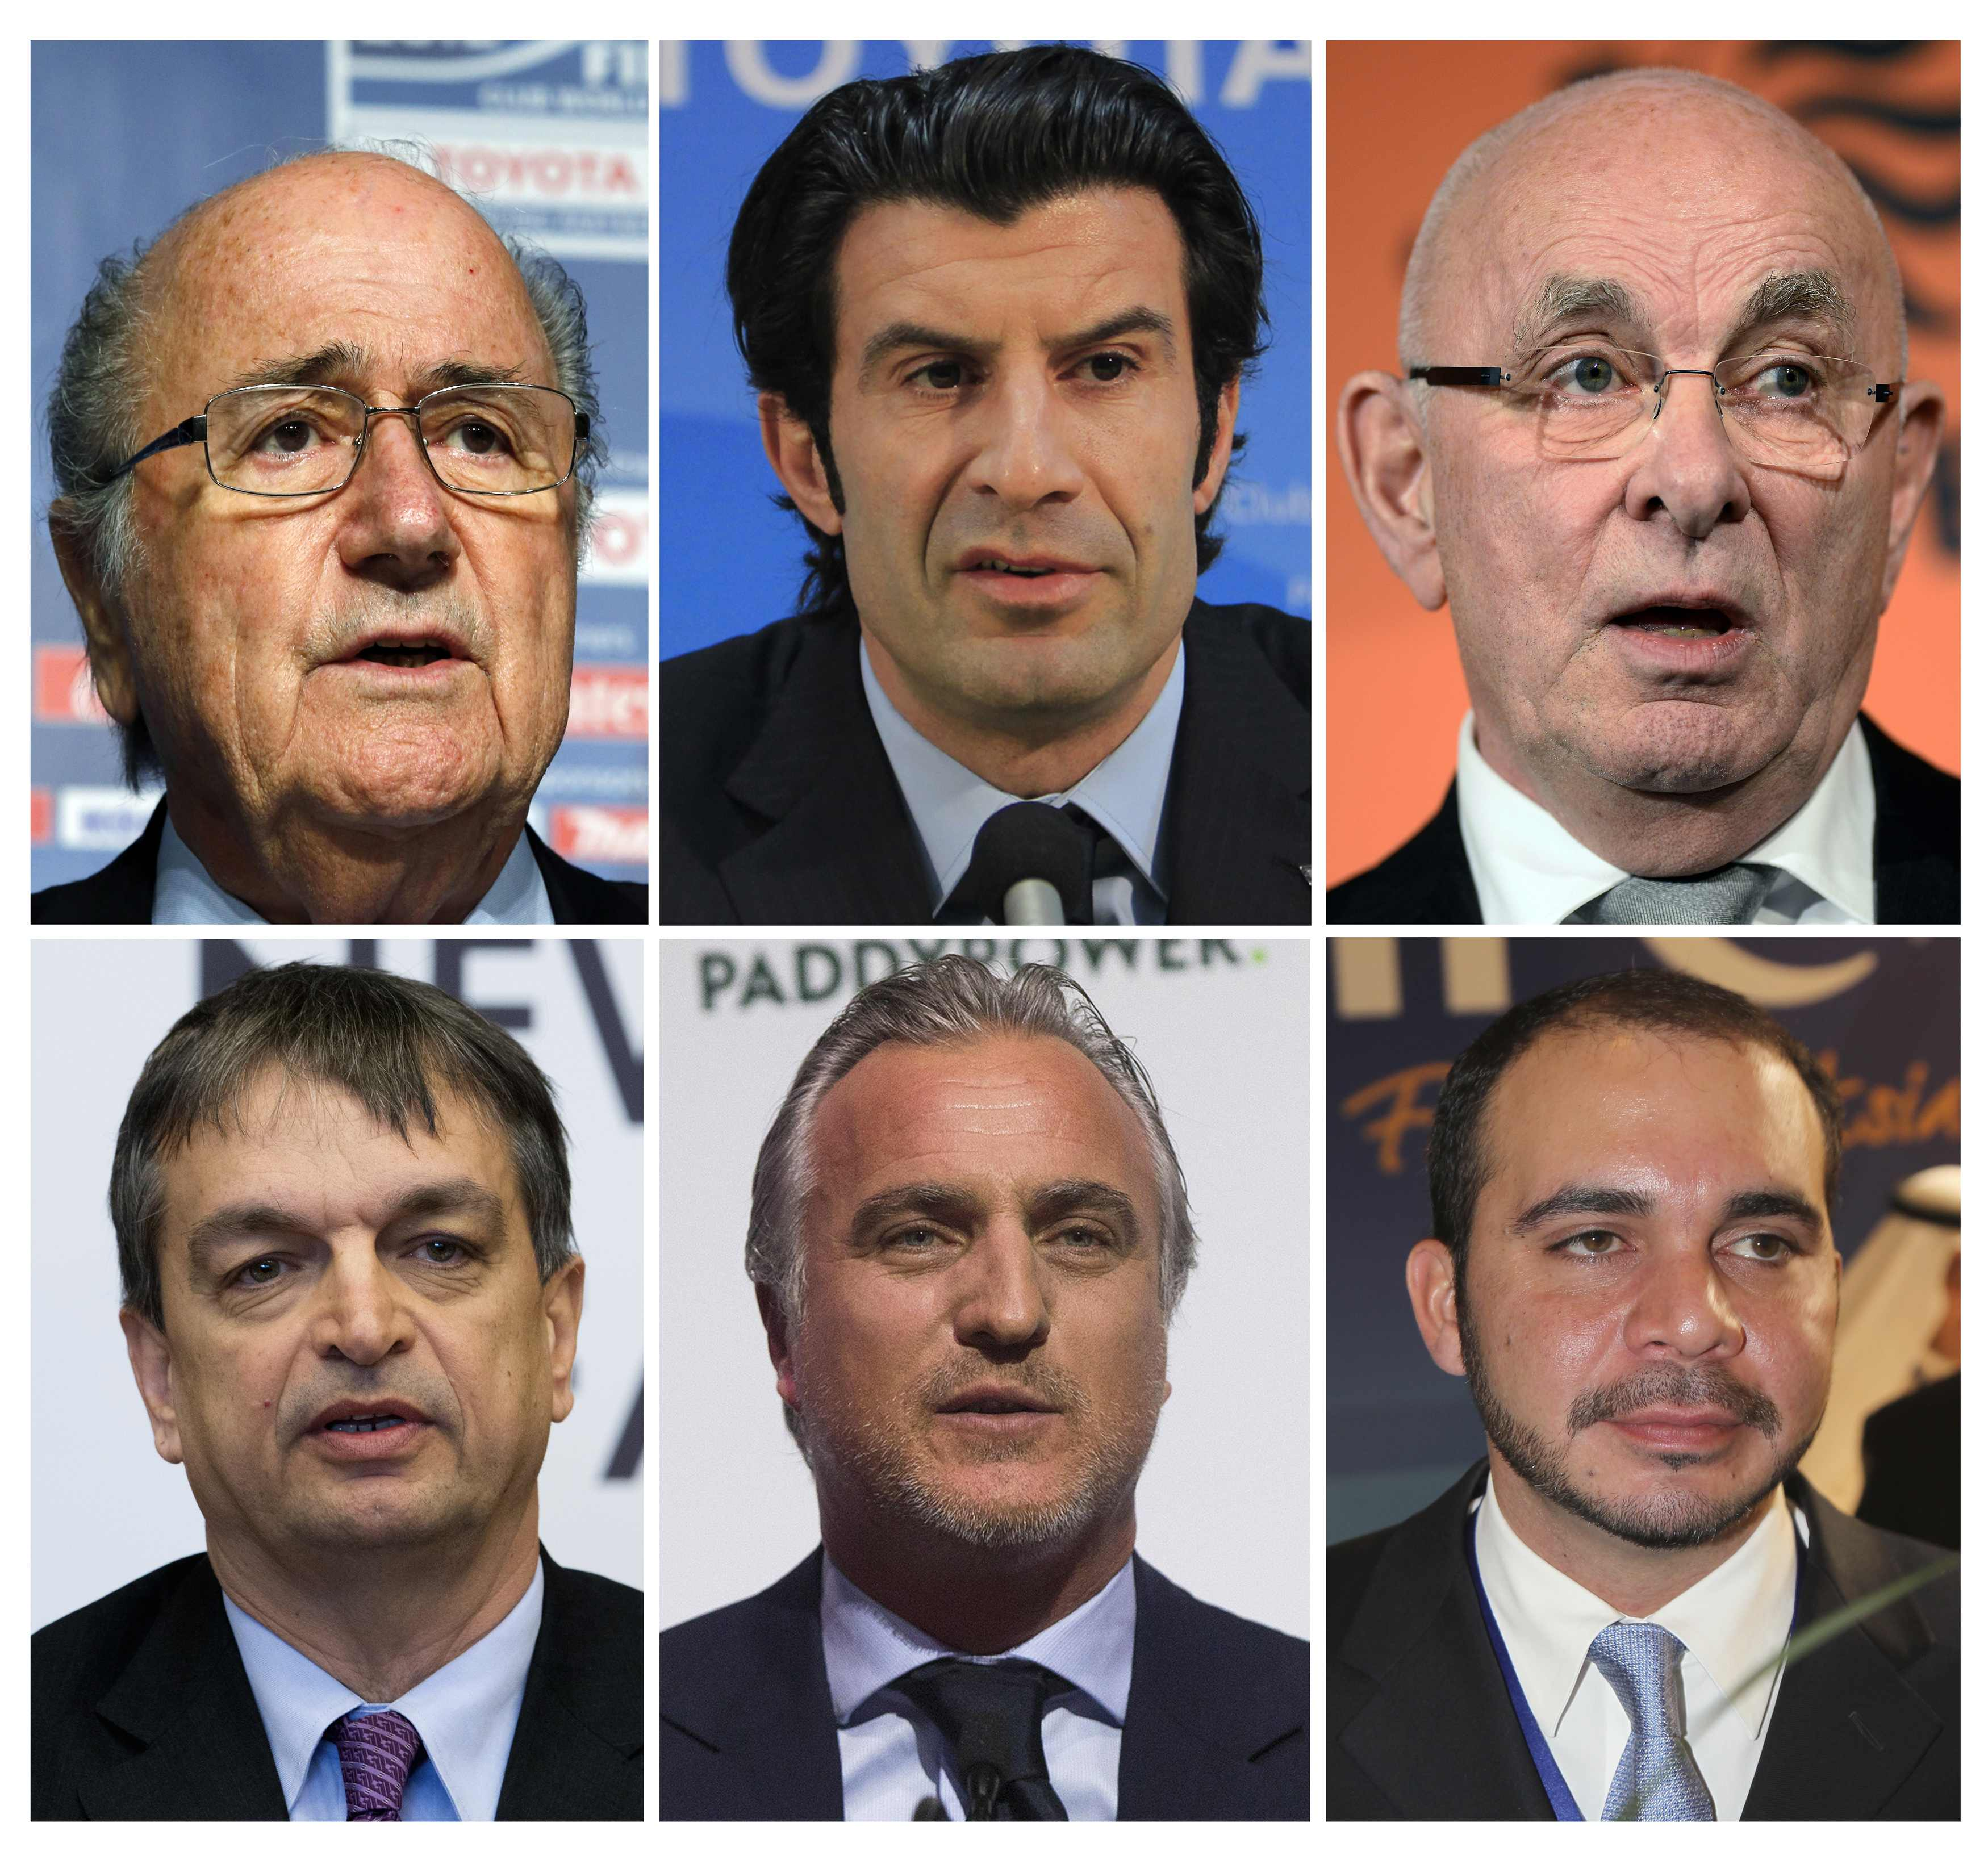 A combination of file pictures shows the candidates running for the FIFA presidency. From L-R: (top row) FIFA President Sepp Blatter, former Portuguese international soccer player Luis Figo, Dutch FA president Michael van Praag, (bottom row) former FIFA official Jerome Champagne of France, former footballer David Ginola from France and Jordan's Prince Ali bin al-Hussein. REUTERS/Staff/Files (SPORT ELECTIONS POLITICS)